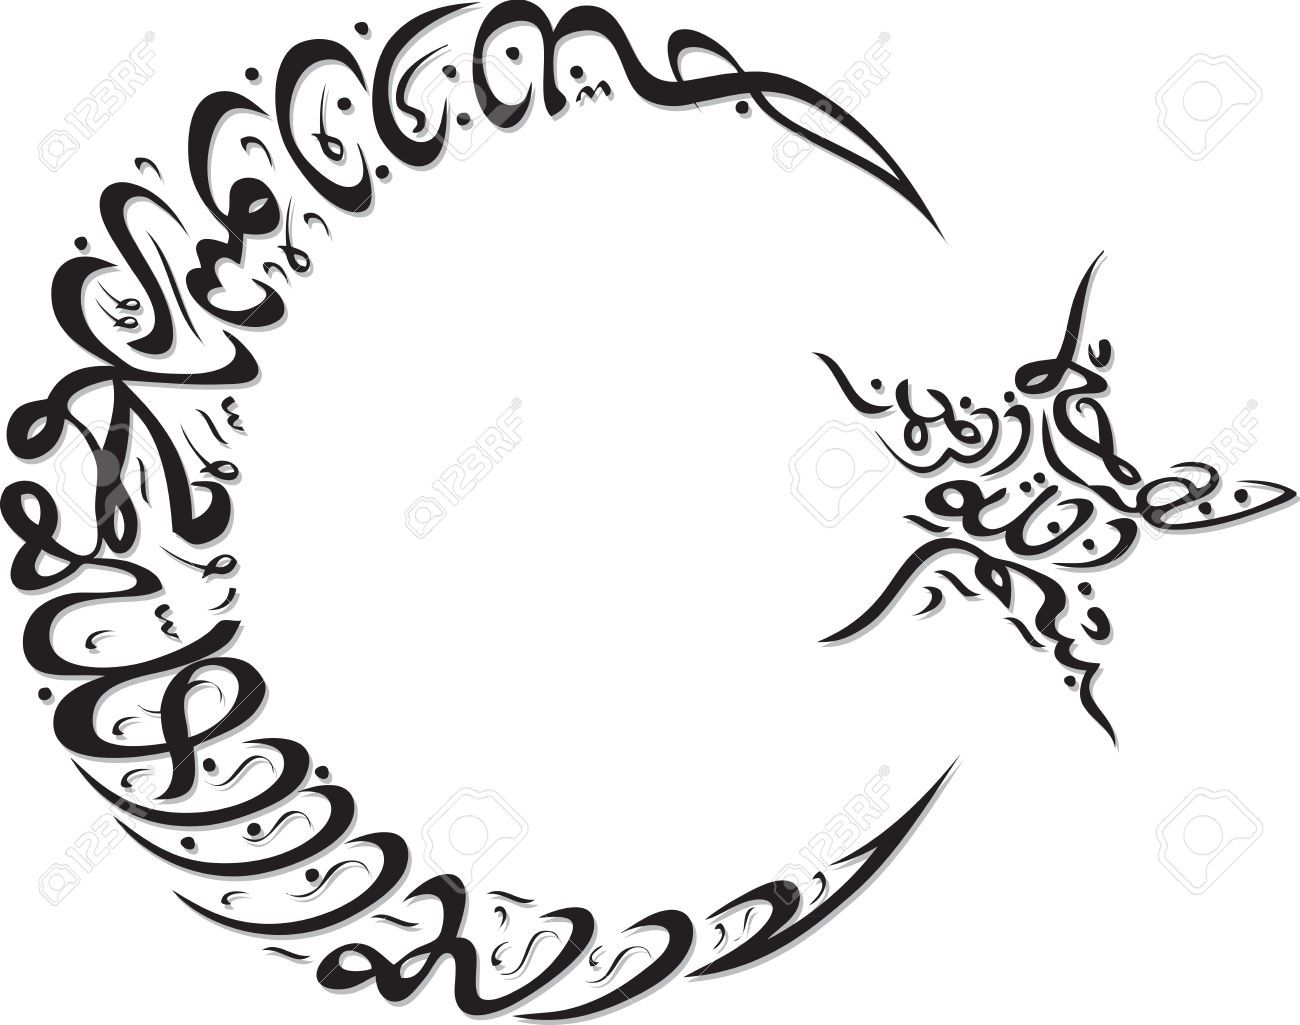 Islamic Calligraphy In Crescent And Star Shape Black On White